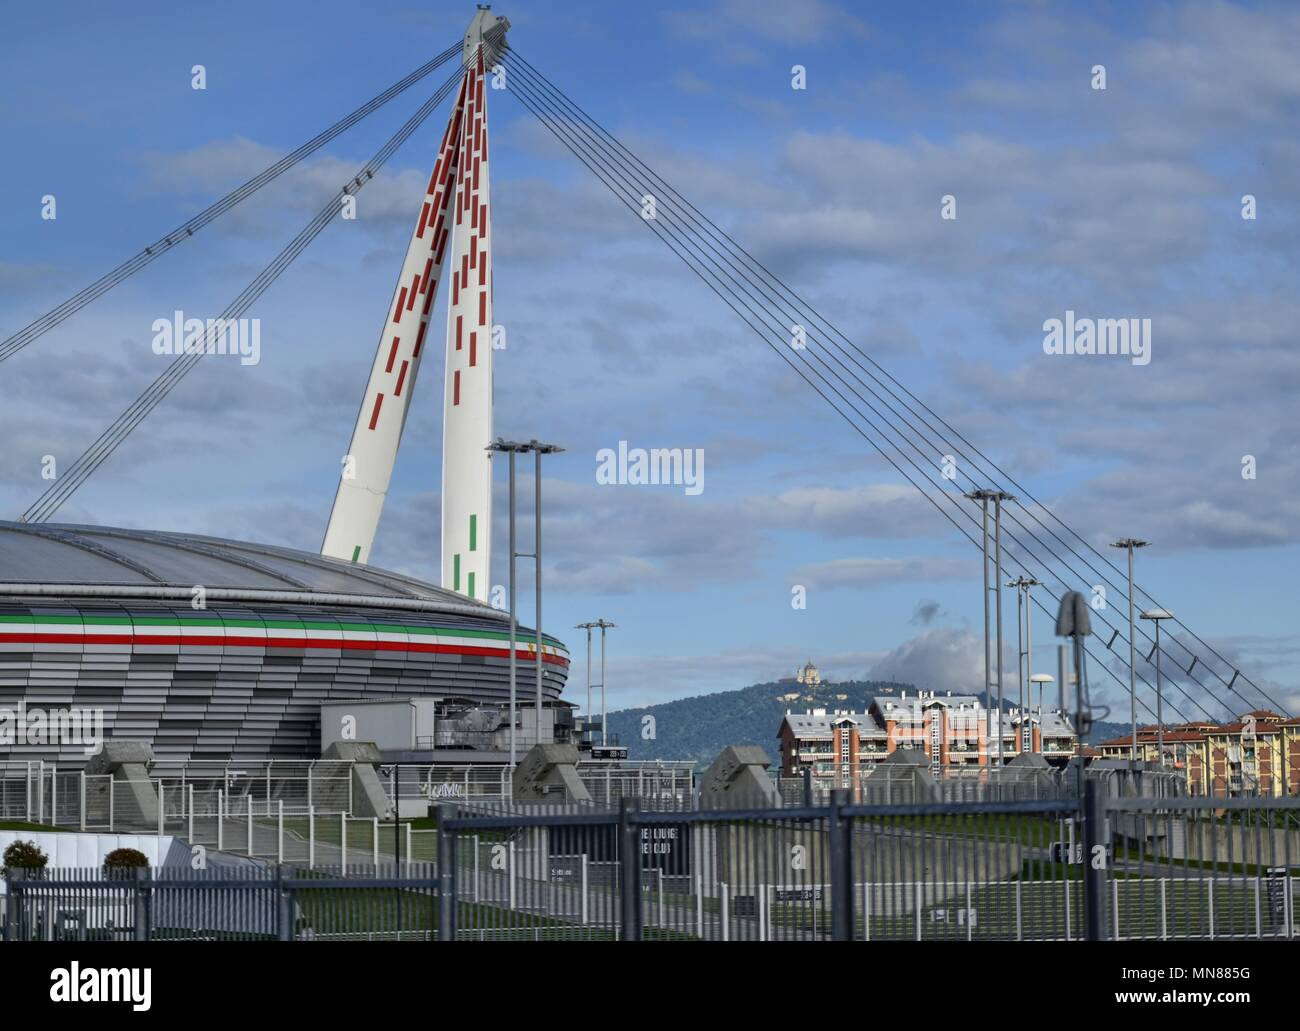 allianz stadium new name of the old juventus stadium the basilica of superga peeps out among the tensostructures stock photo alamy https www alamy com allianz stadium new name of the old juventus stadium the basilica of superga peeps out among the tensostructures image185193500 html